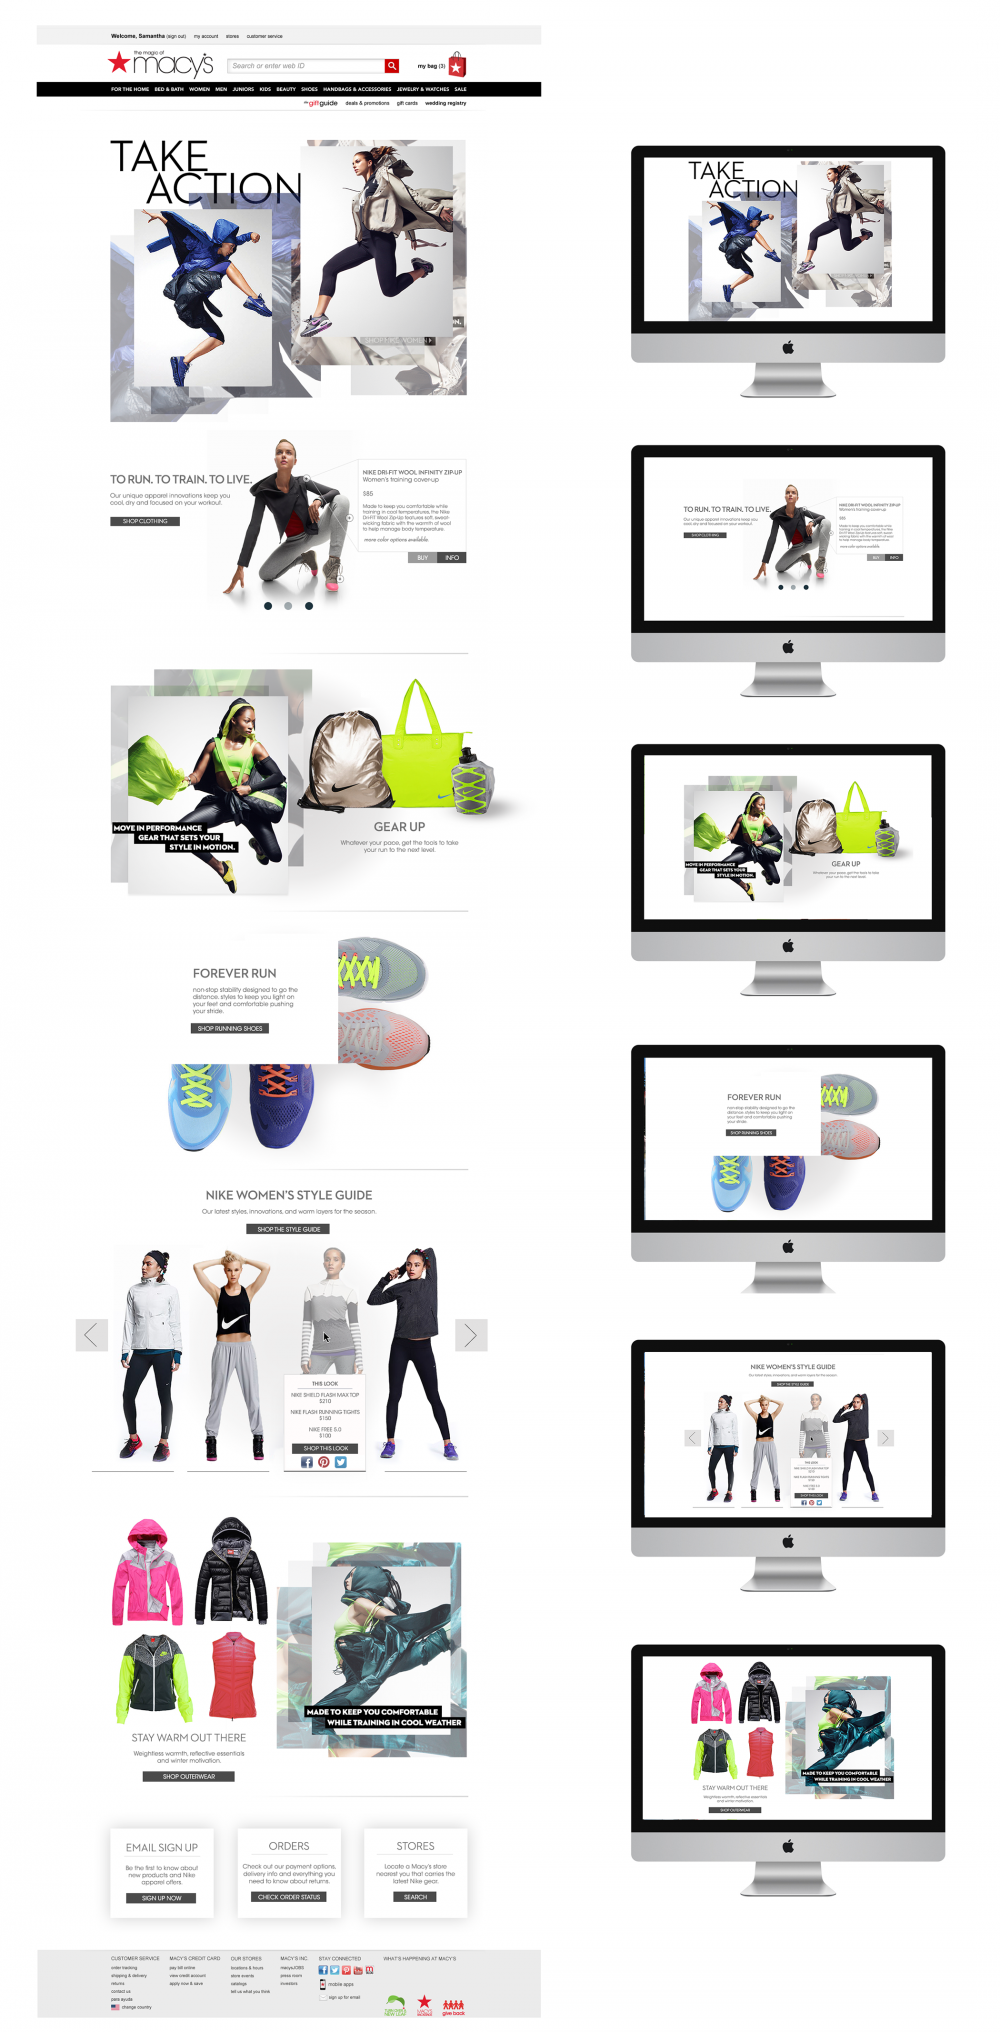 Nike_interative design_3